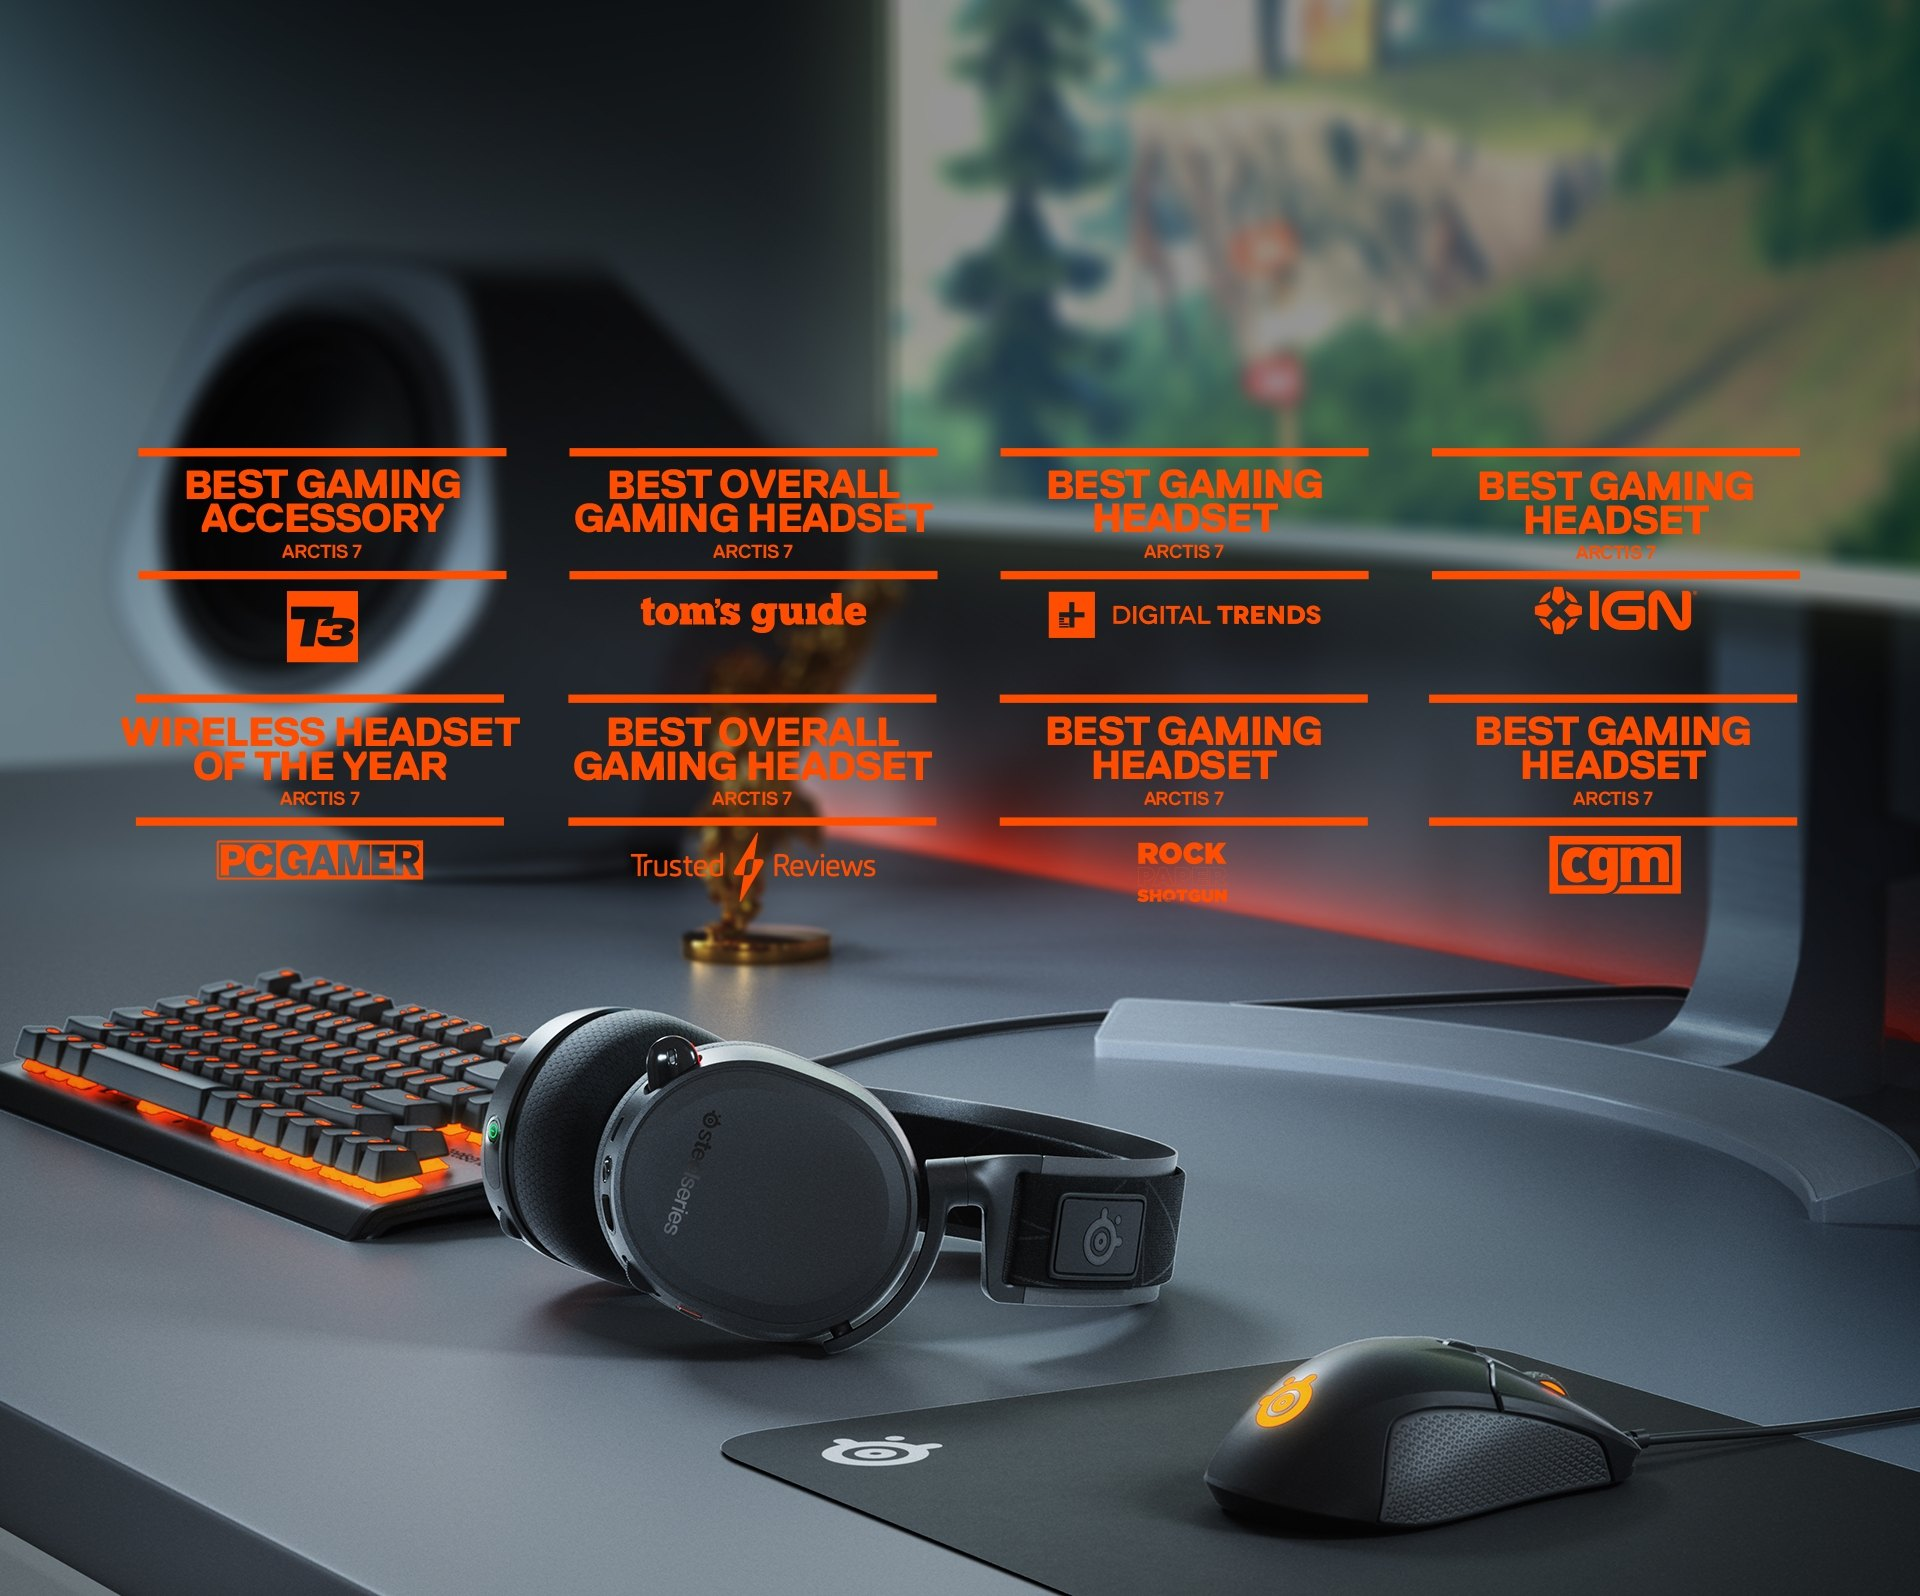 Arctis 7 Best Wireless Gaming Headset Steelseries Headphone With Mic And Volume Wiring Diagram The Most Awarded Ever